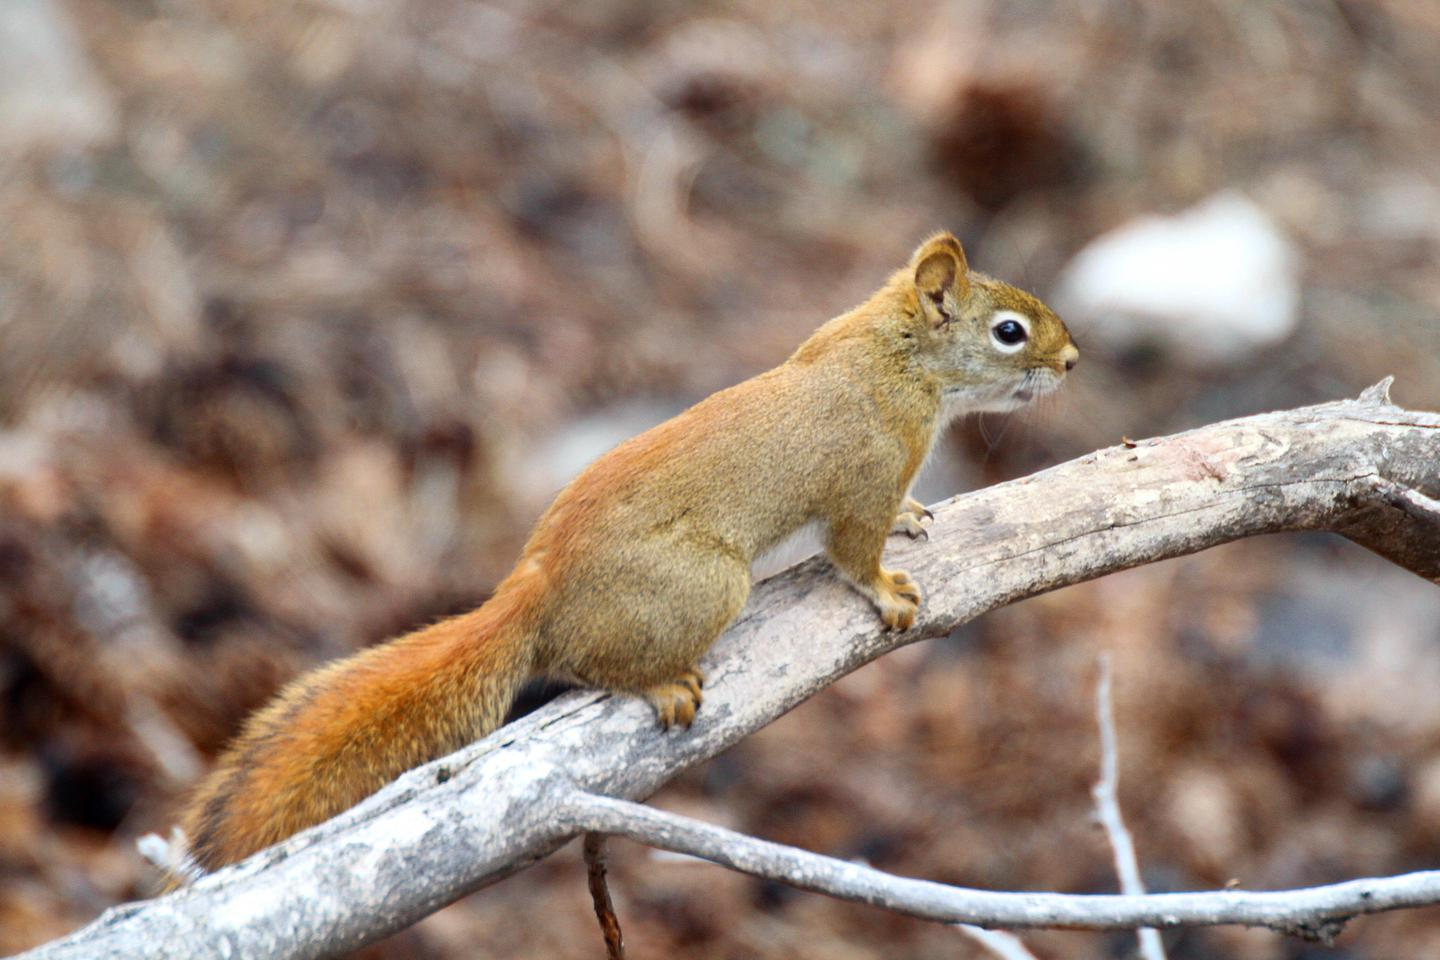 Red SquirrelRed squirrels are commonly observed along the Roof Trail near the visitor center.